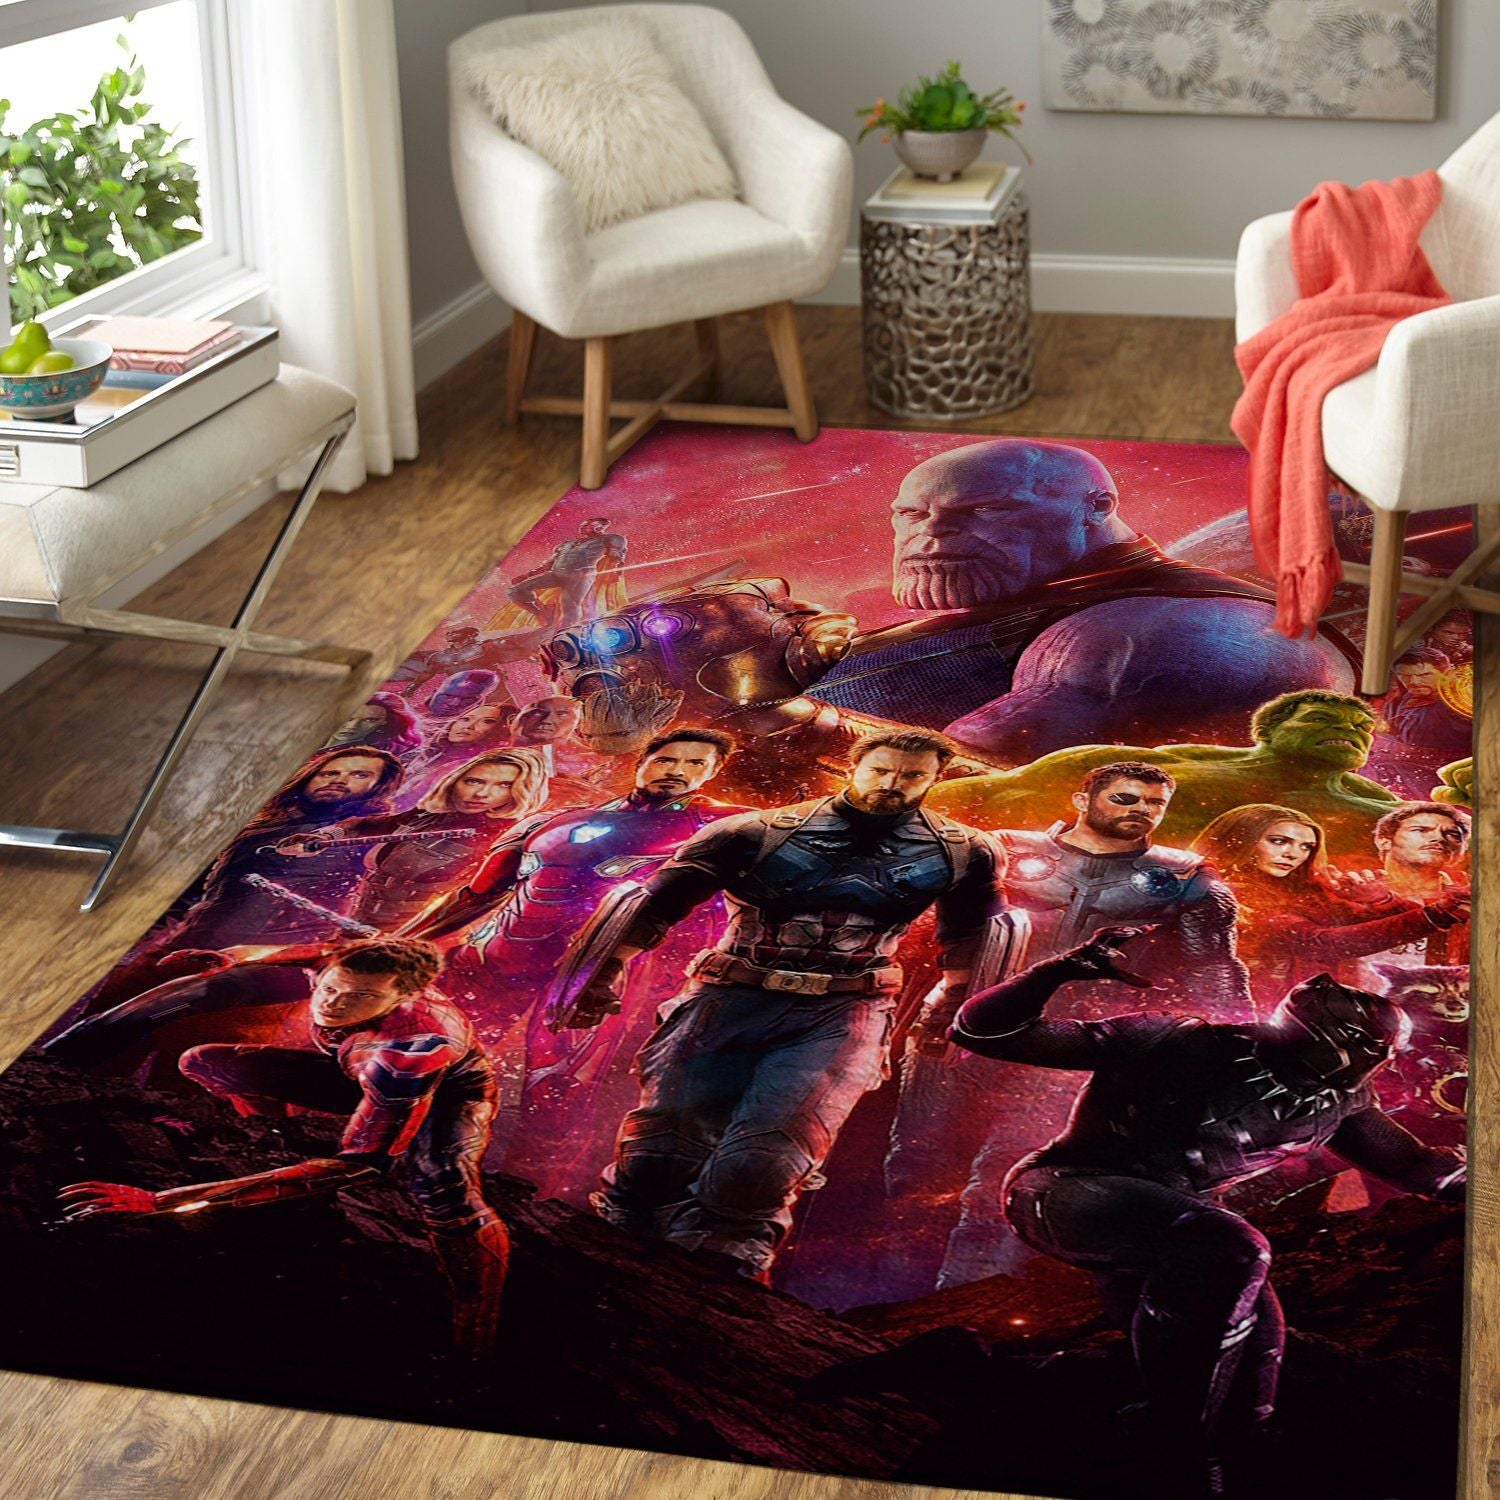 Marvel Superhero Area Rug / Avengers Infinity War Movie  Floor Decor 190831